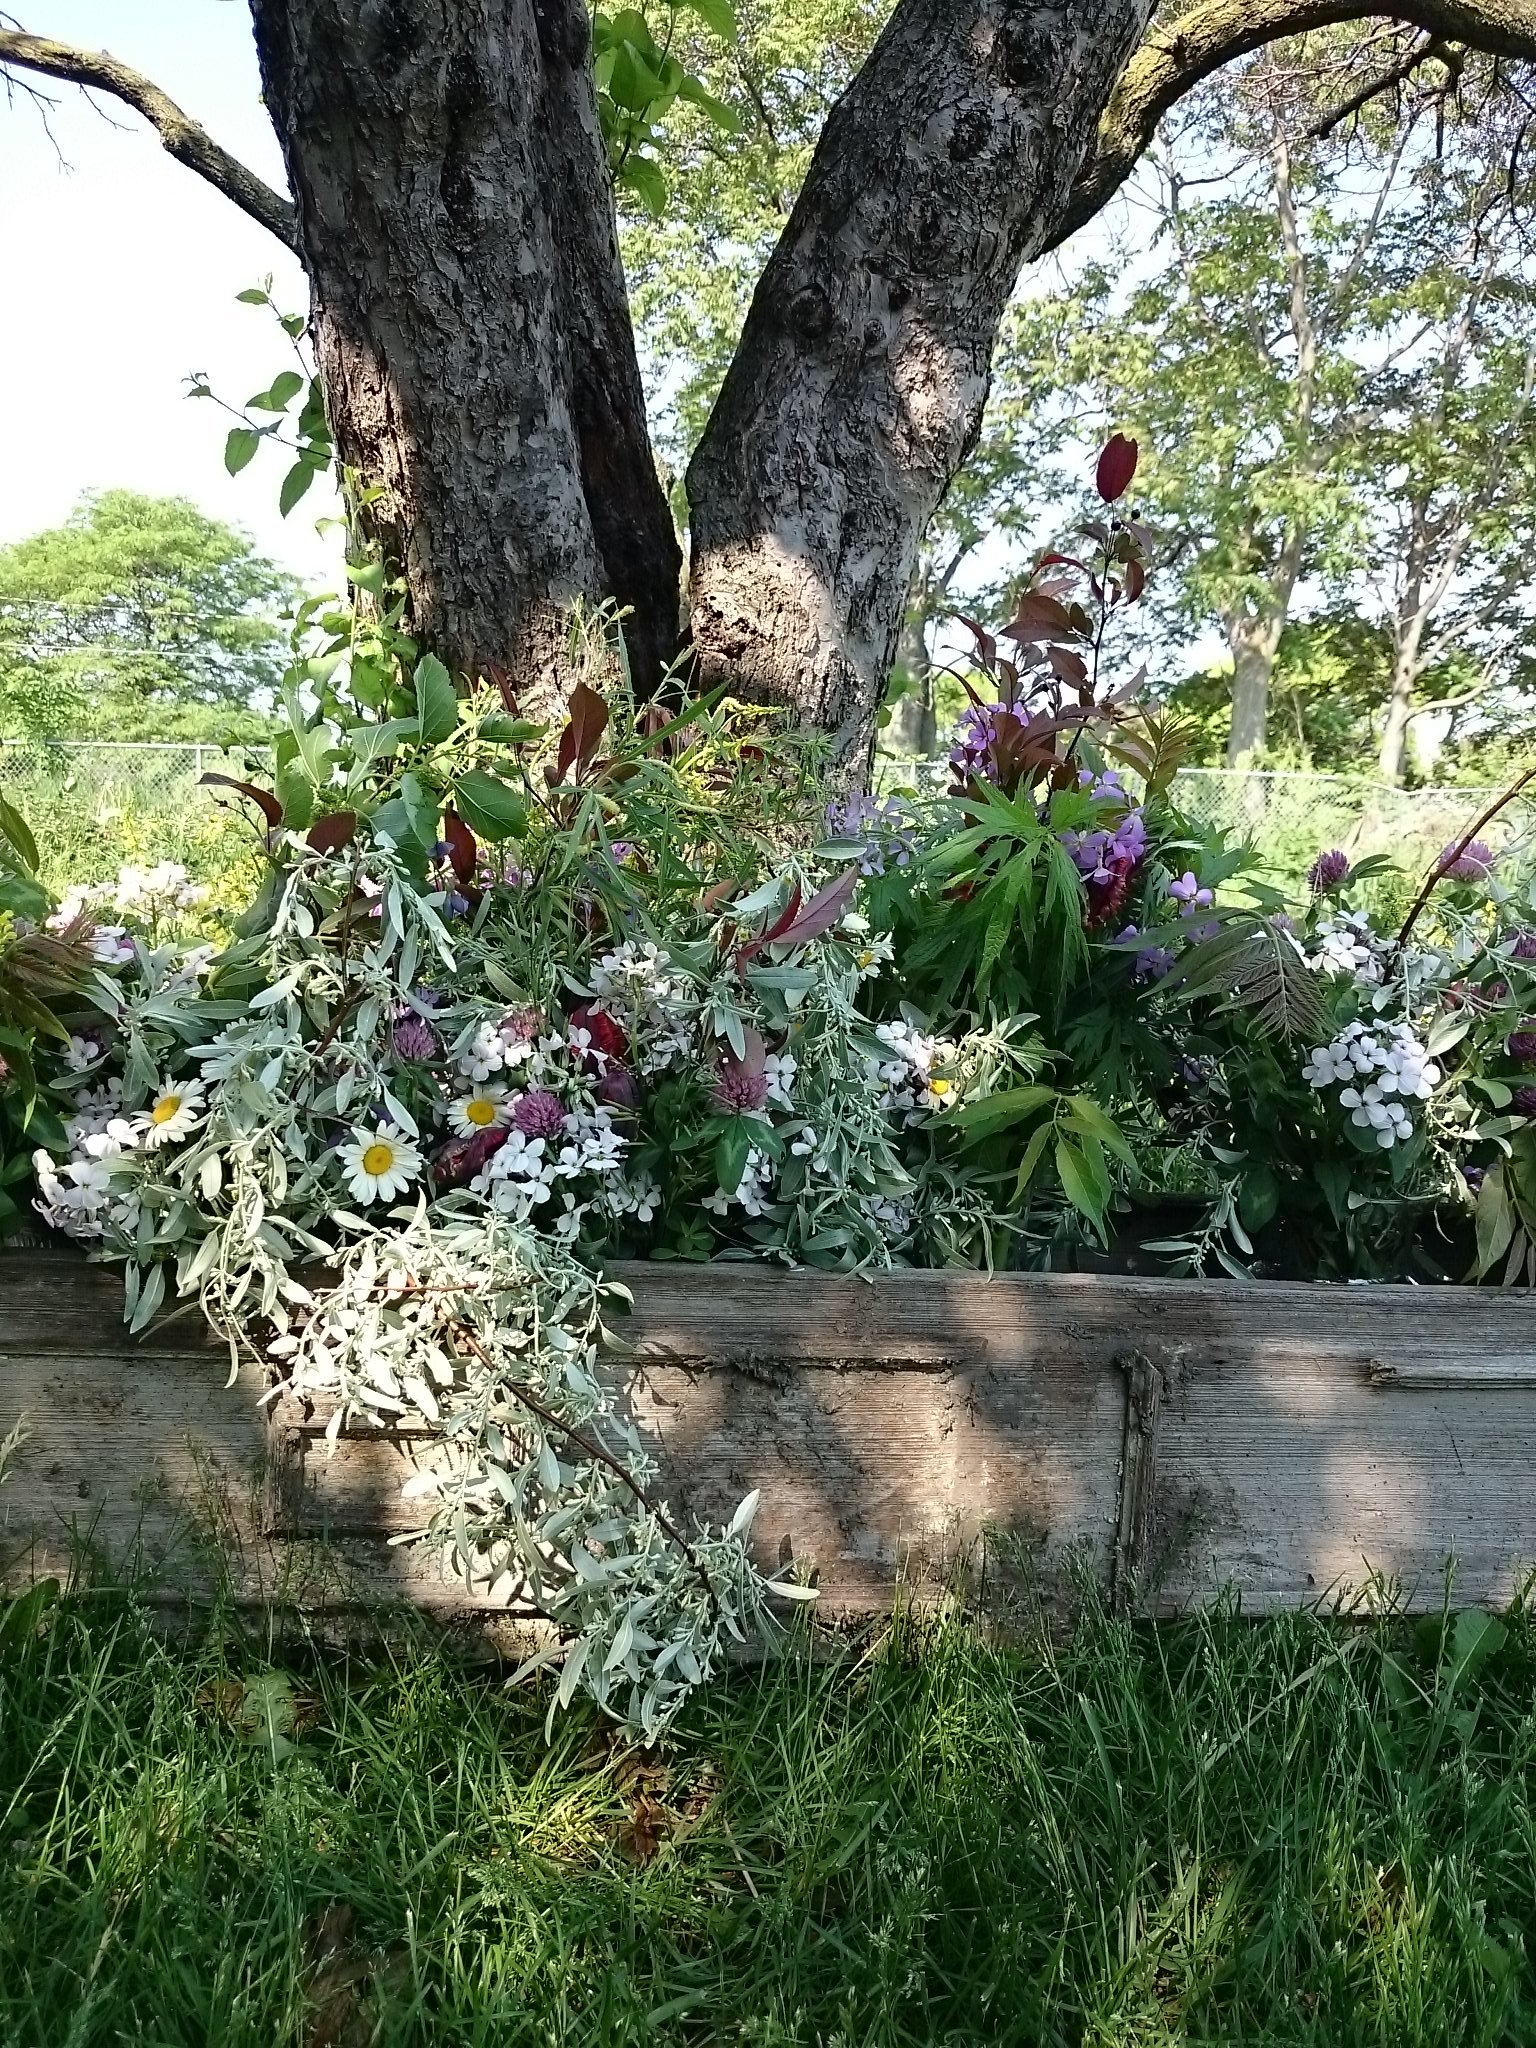 Weekly Bouquet Pick-up in early Summer 2015 with wild brassicas, clovers, daisies, mugwort, mulberries, and more.